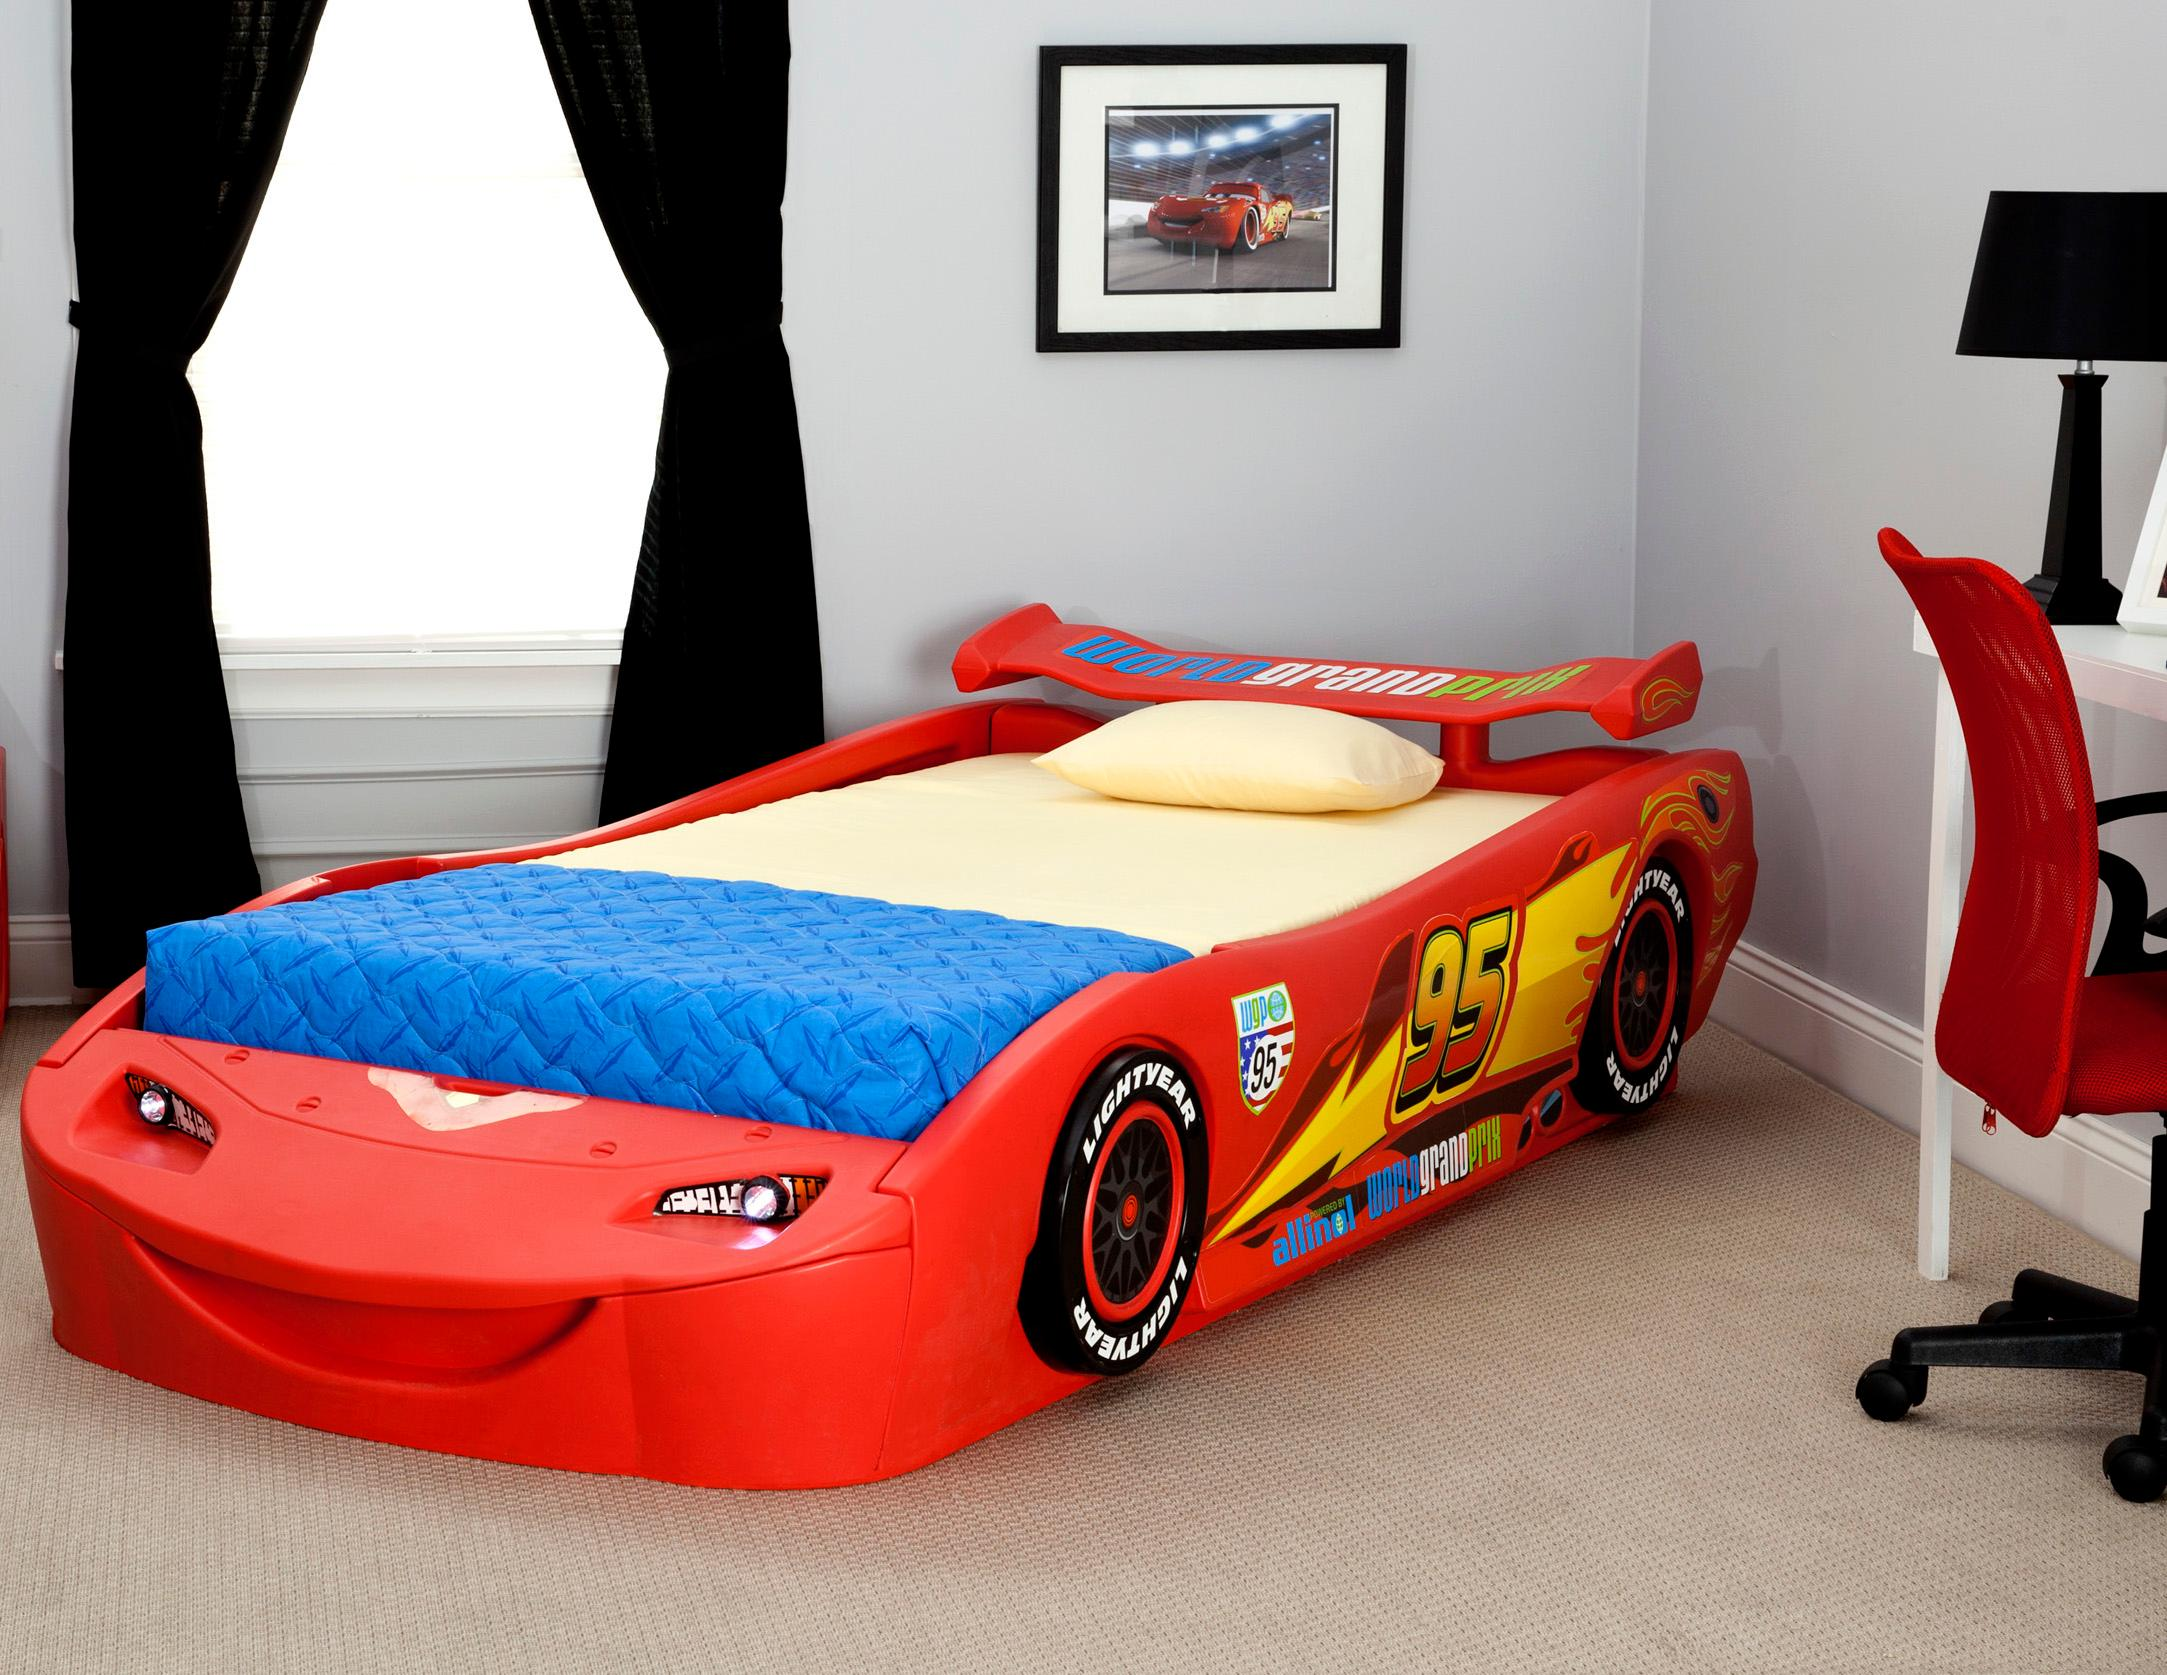 Race Car Room Decor Kids Racing Race Car Bed Disneycartoys Cars Themed Kids Bedroom